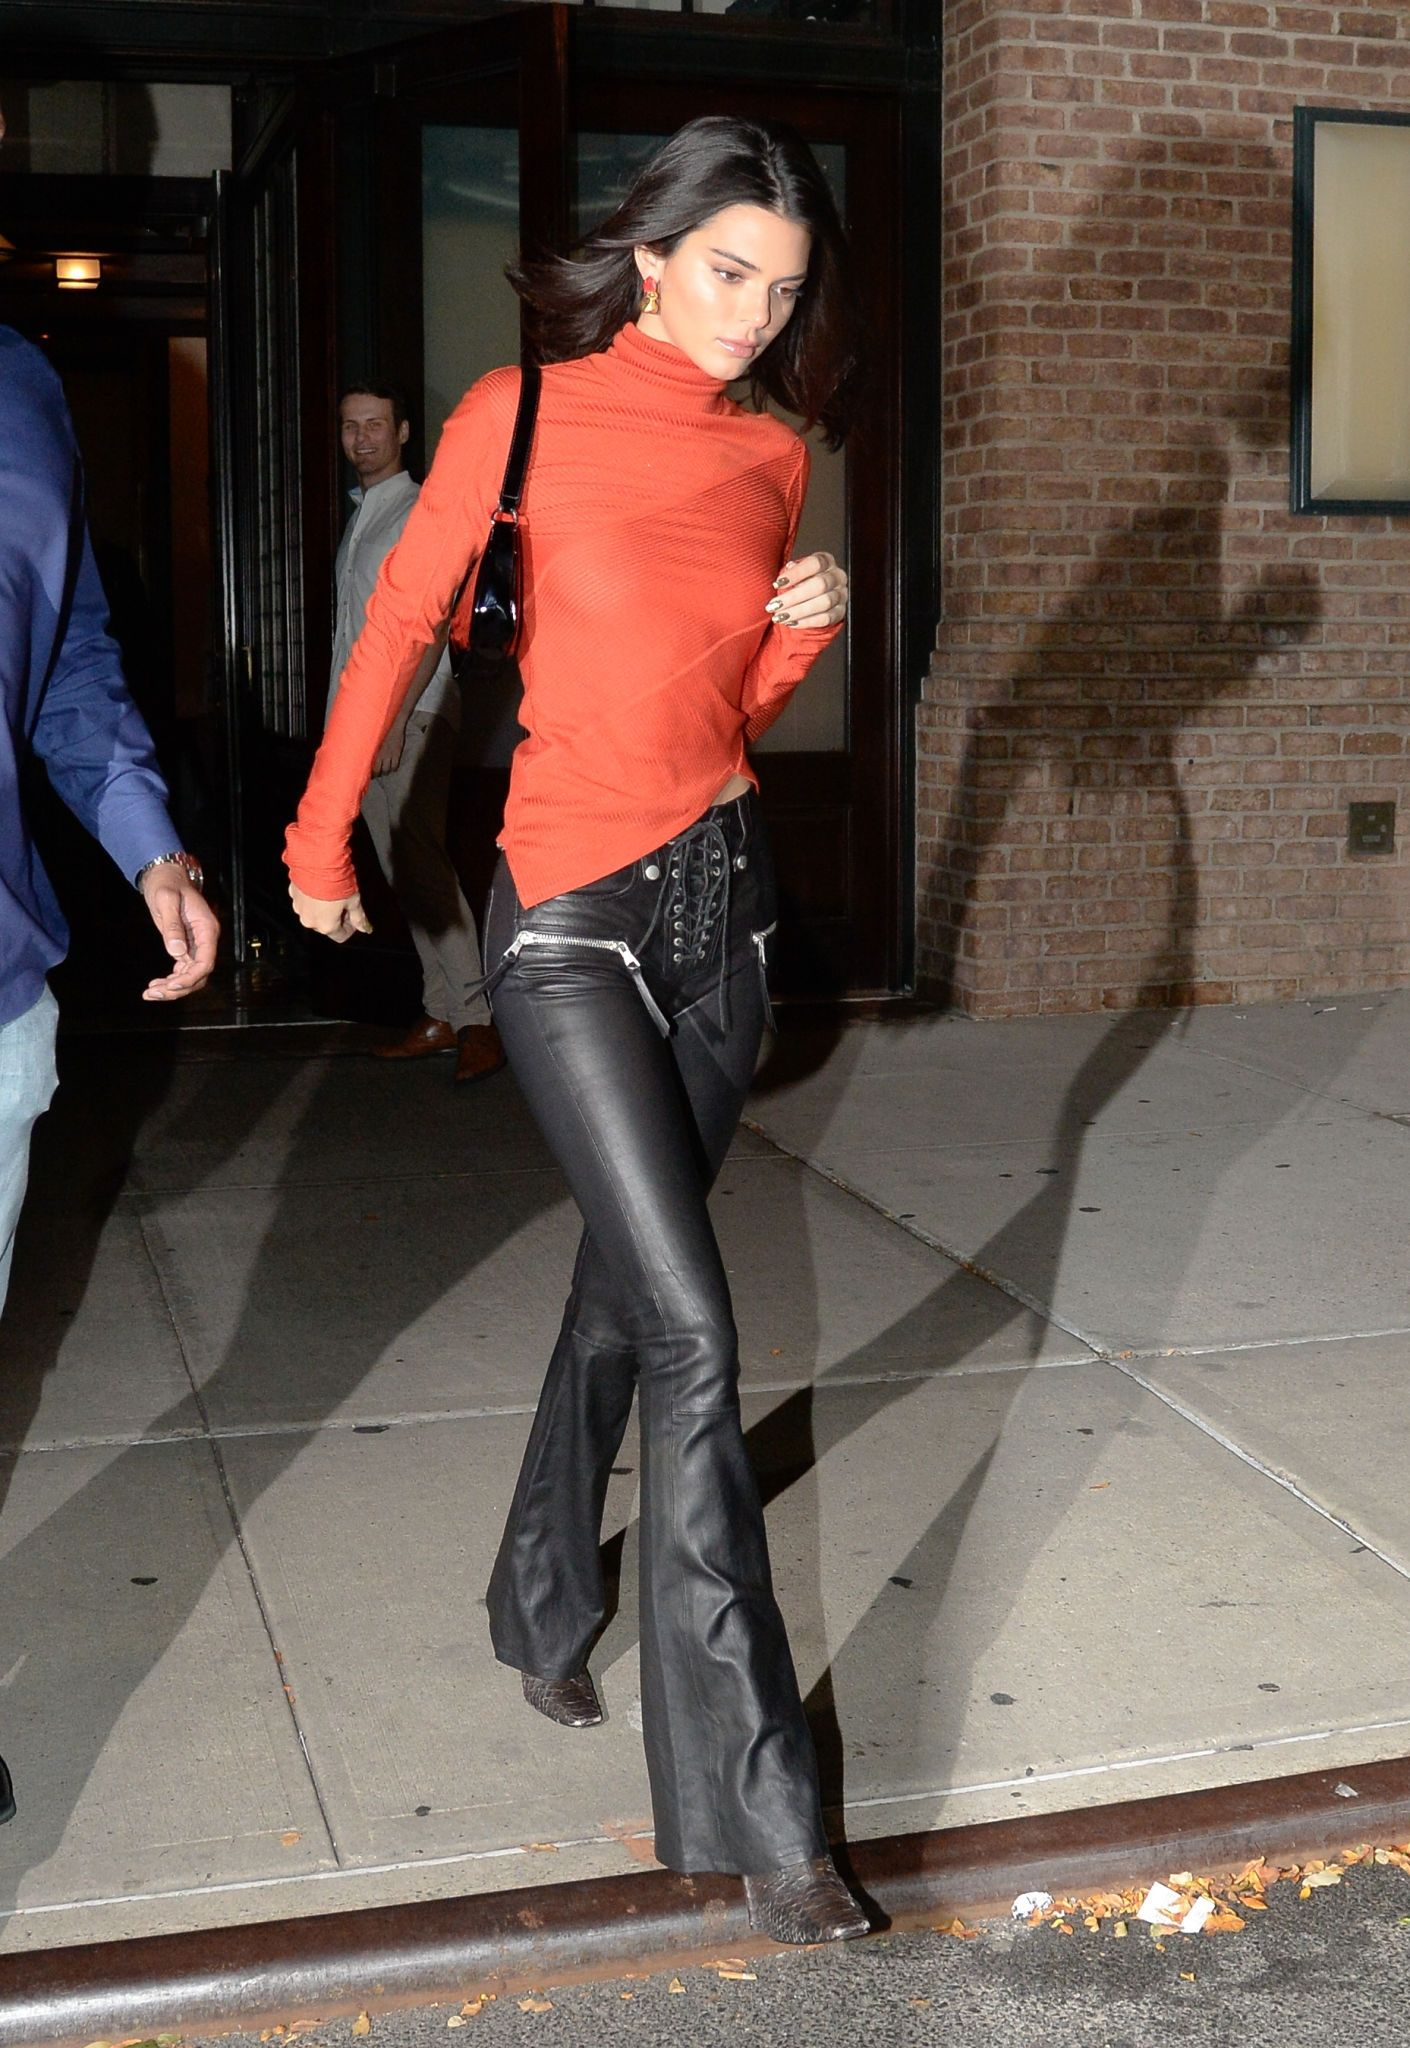 Kendall Jenner leaving The Greenwich Hotel